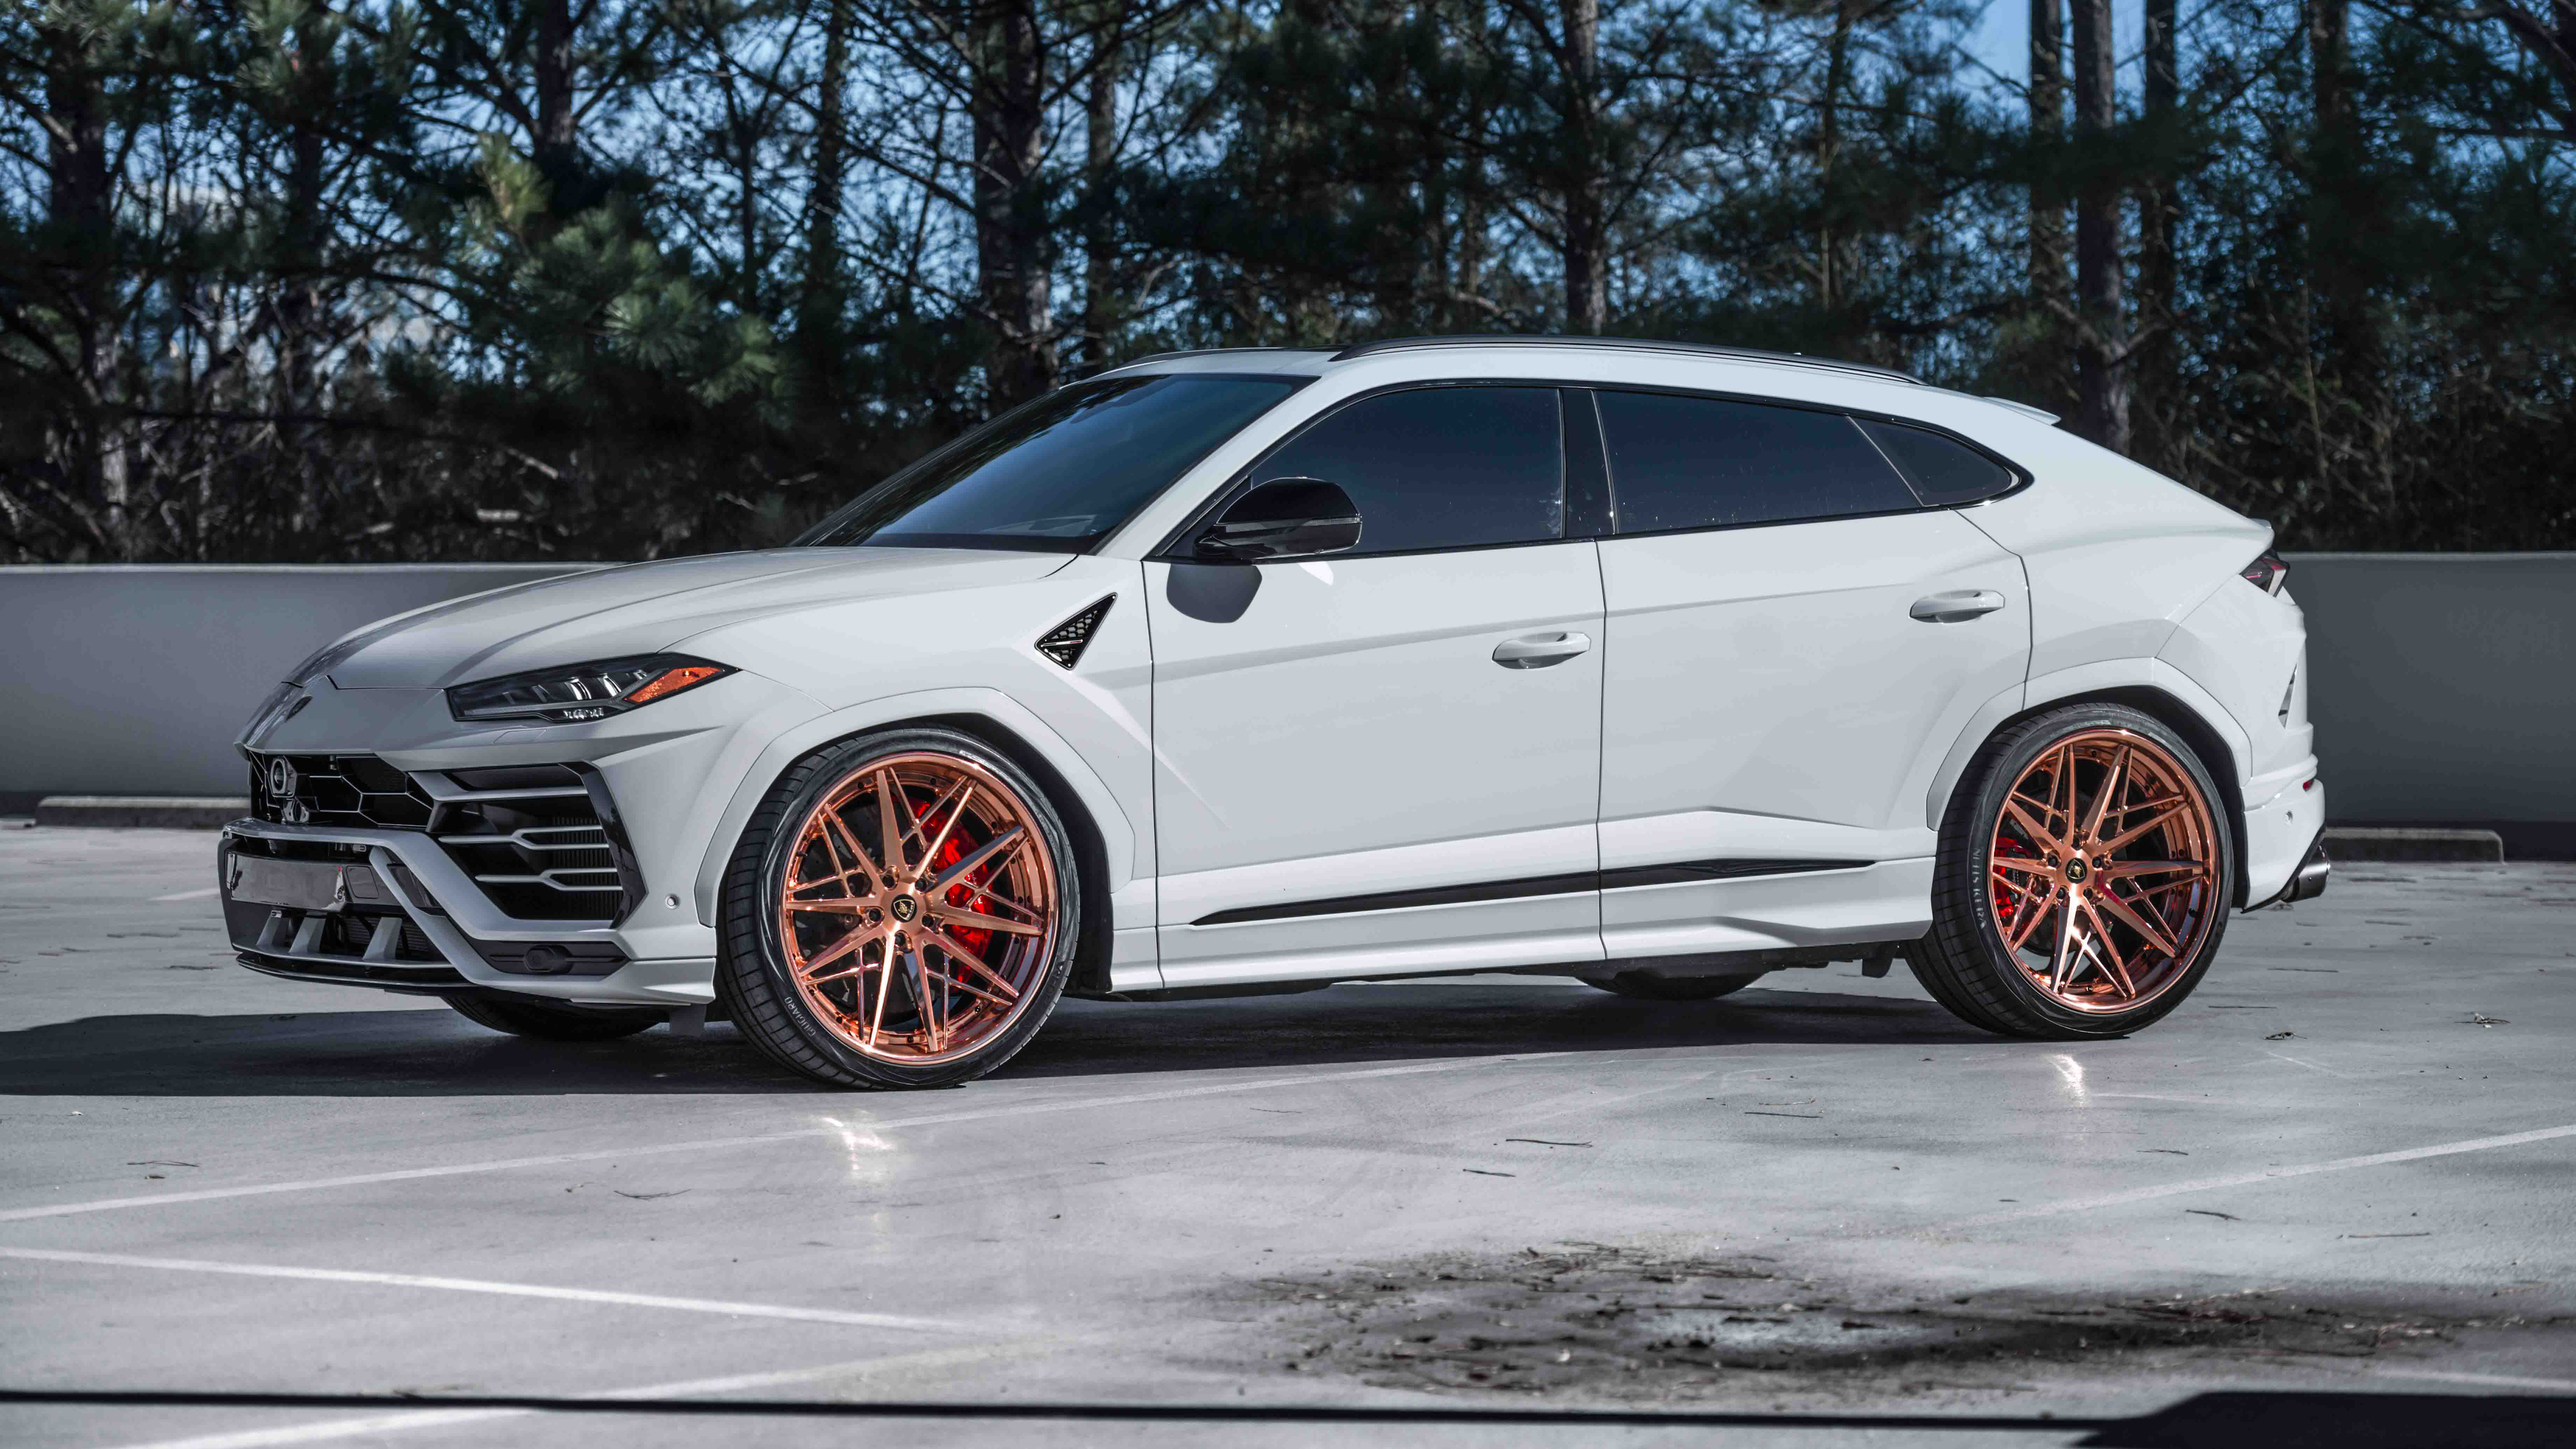 lamborghini urus 2019 1565054949 - Lamborghini Urus 2019 - suv wallpapers, lamborghini wallpapers, lamborghini urus wallpapers, hd-wallpapers, cars wallpapers, 8k wallpapers, 5k wallpapers, 4k-wallpapers, 2019 cars wallpapers